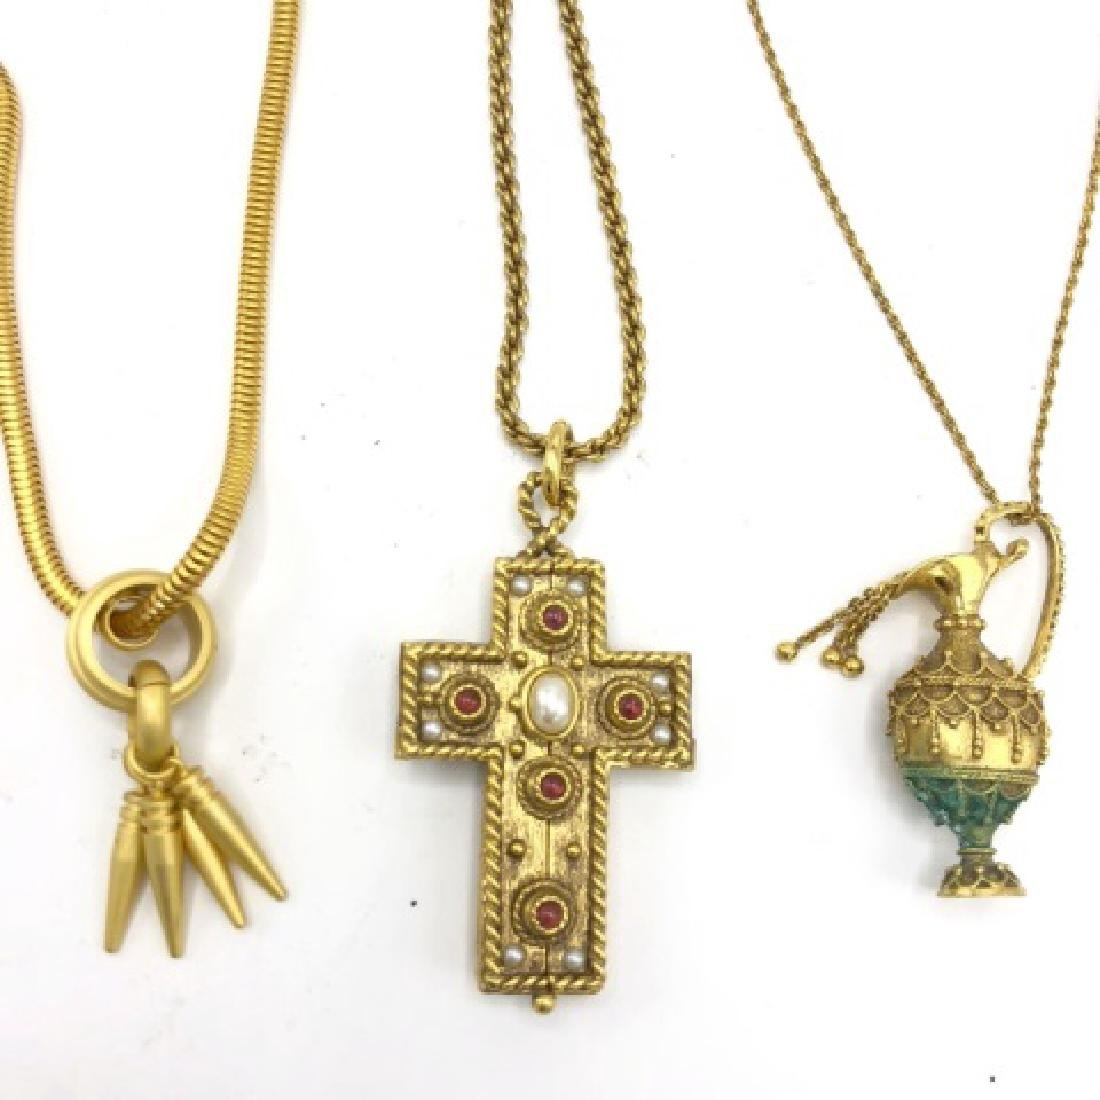 Lot of 3 Gold Tone Vintage Necklace Pendants - 2